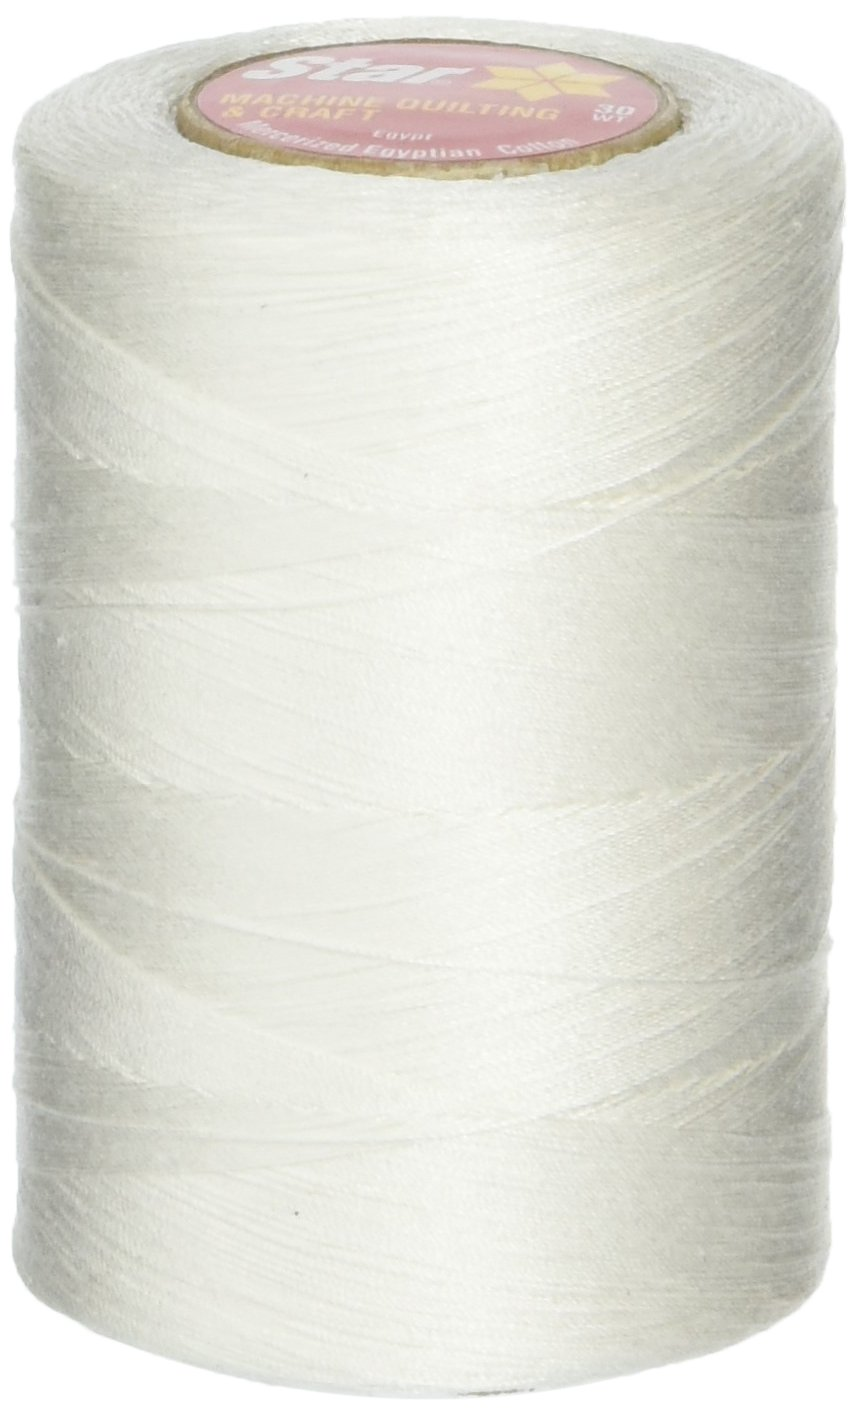 Coats: Thread & Zippers V37-001 Star Mercerized Cotton Thread Solids 1200 Yards-White Notions - In Network